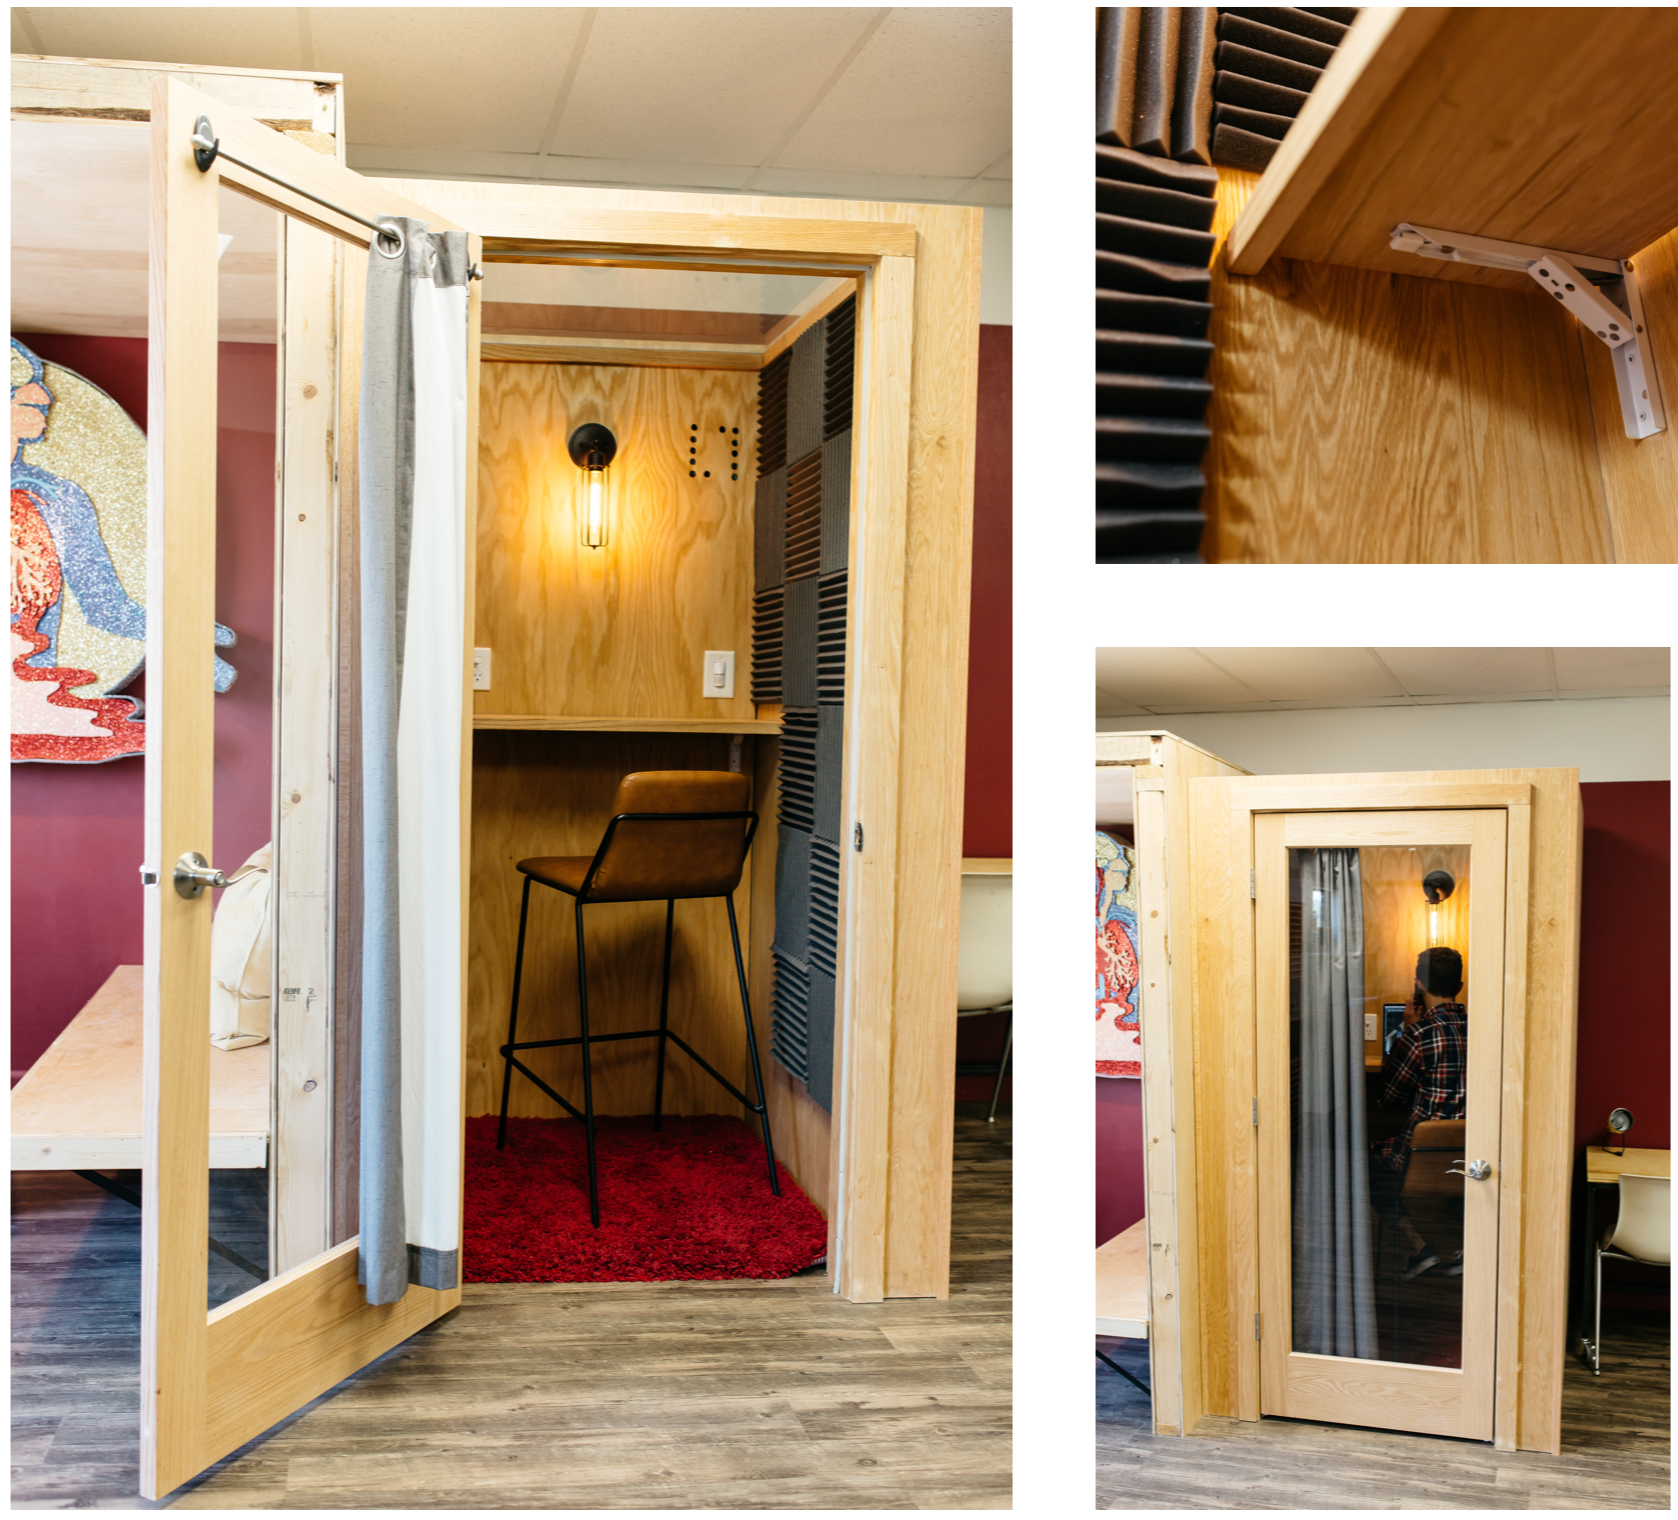 DIY phone booth build coworking space for sale blueprints plans open office